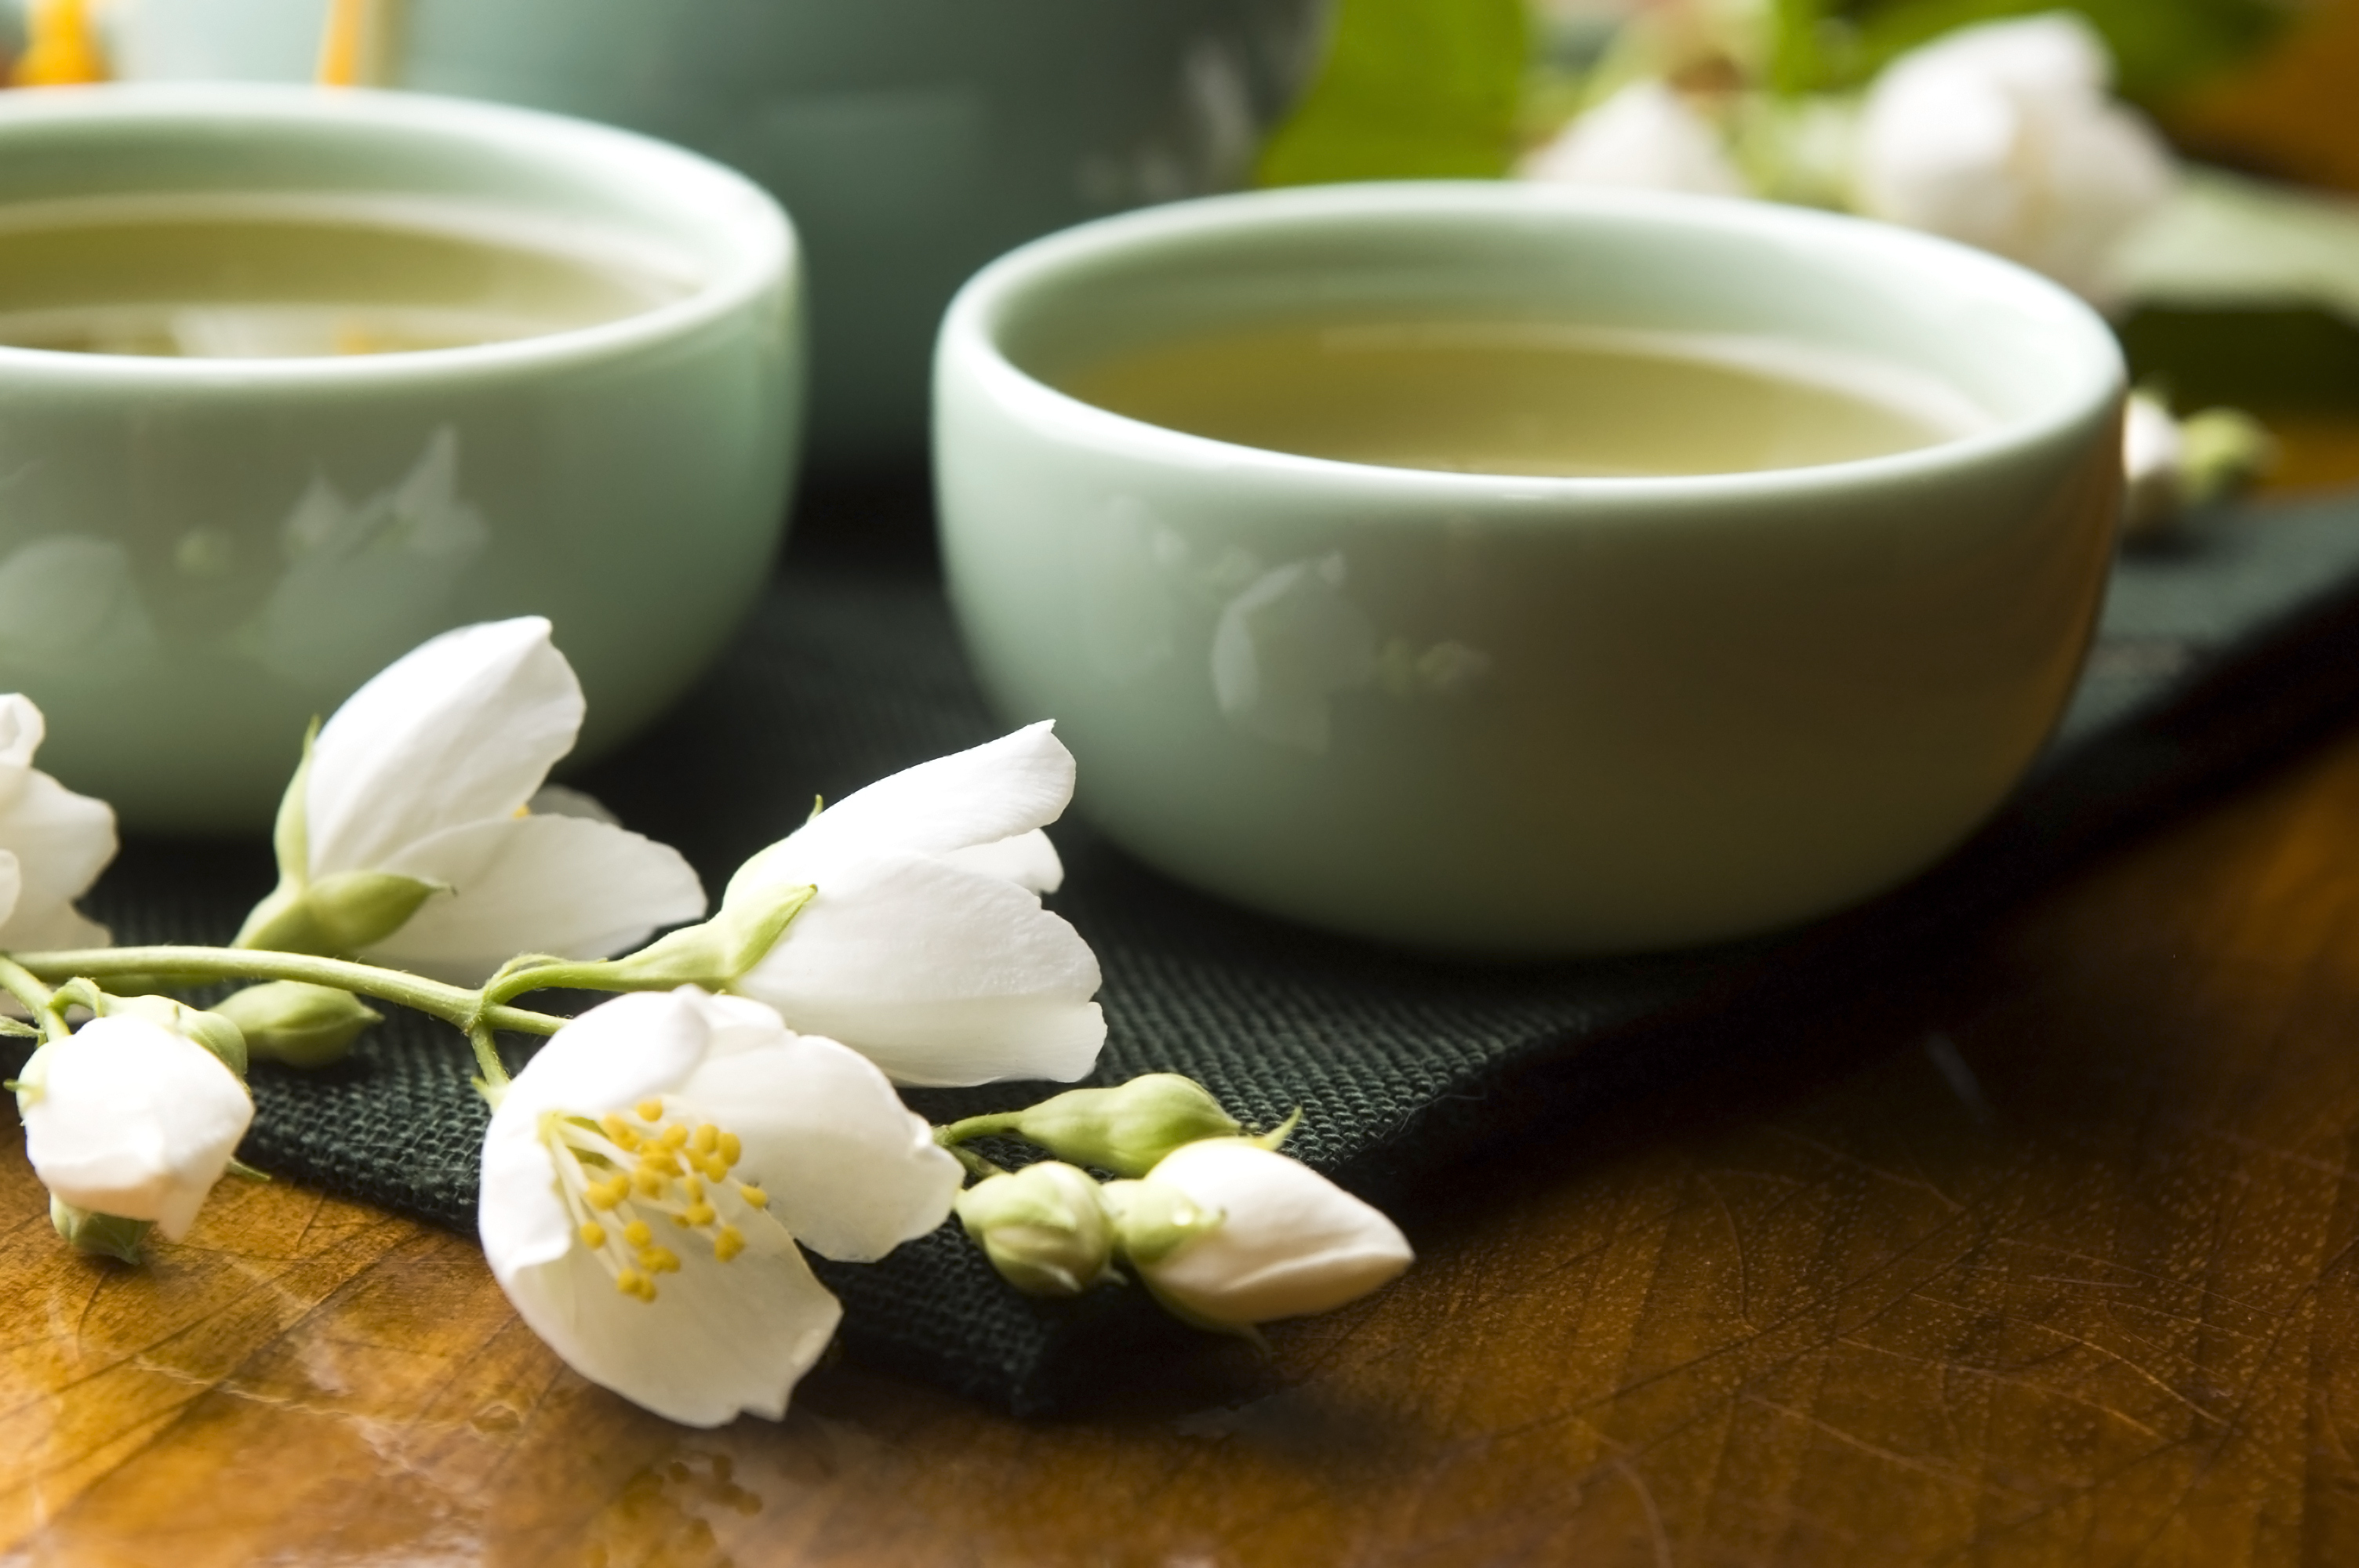 The effects of jasmine green tea livestrong izmirmasajfo Images